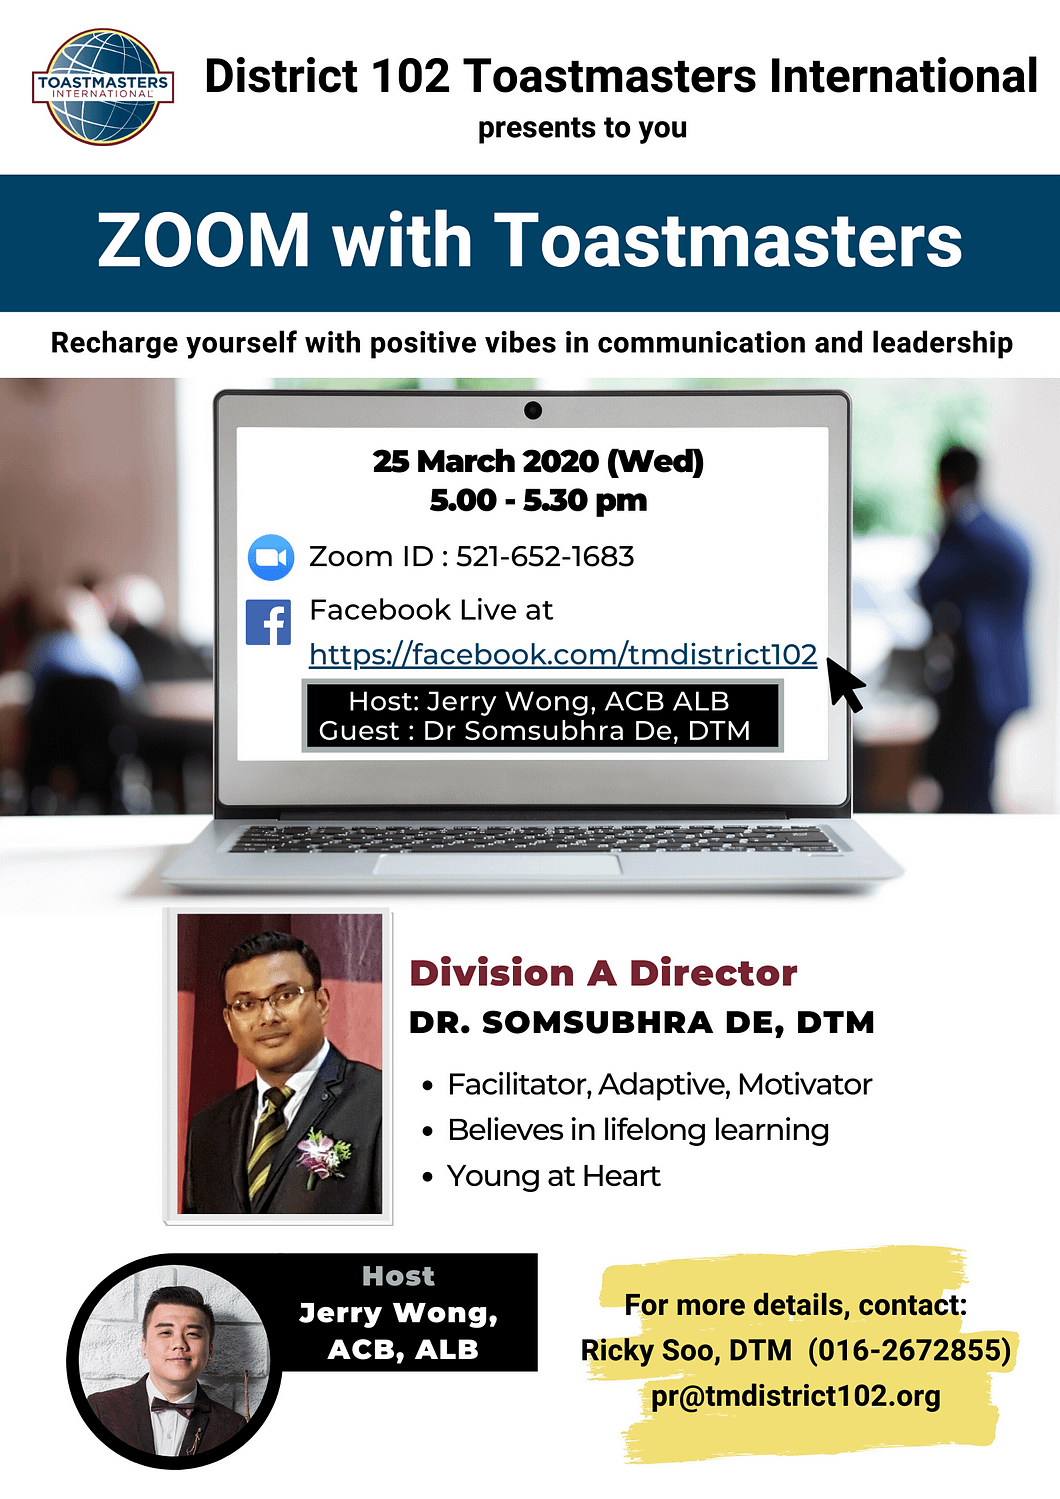 Zoom with toastmasters